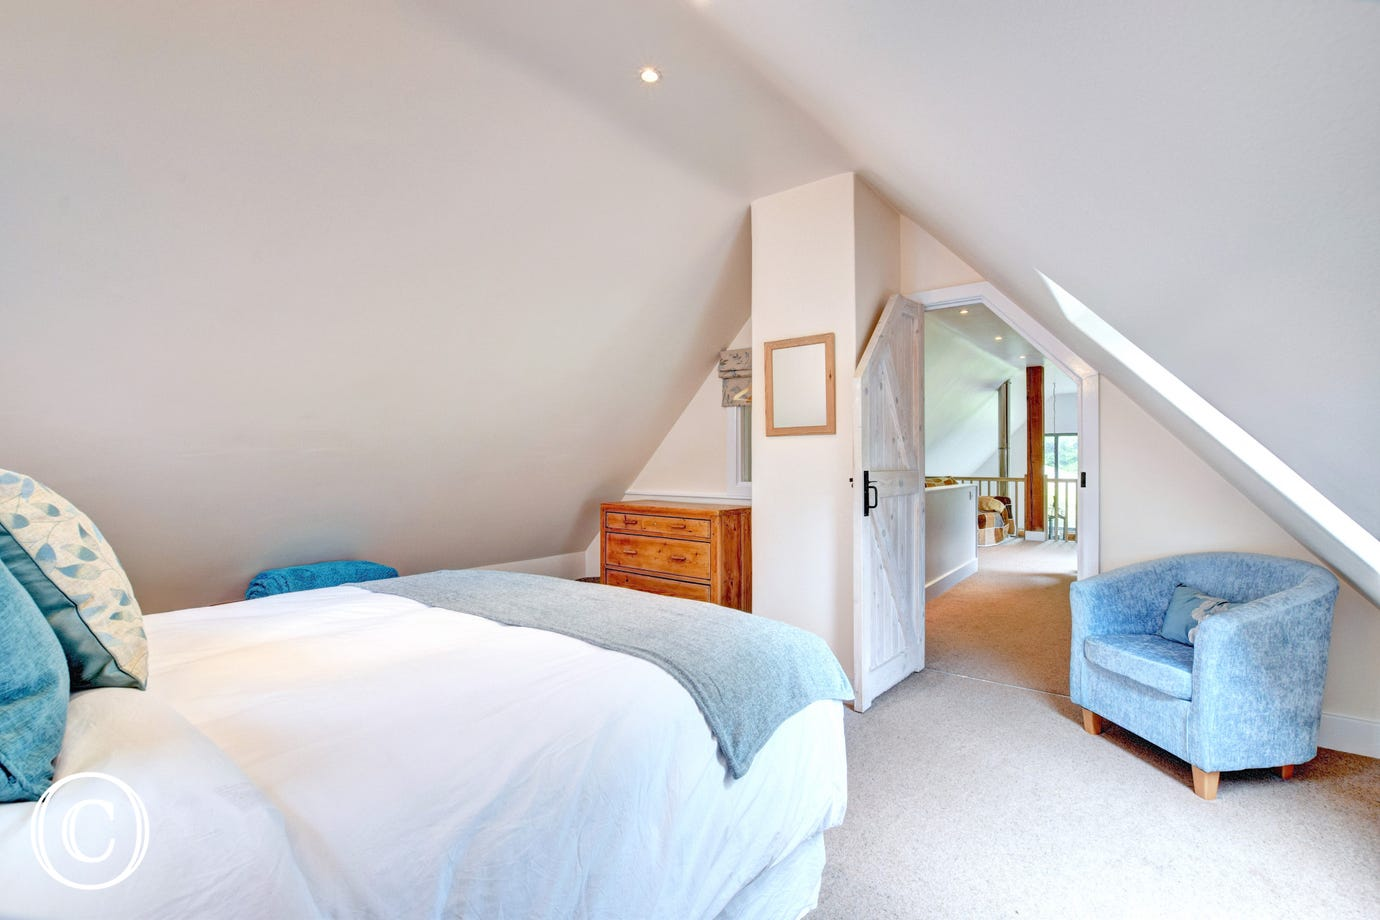 Southills Cottage, Cornworthy - Bedroom - view 2